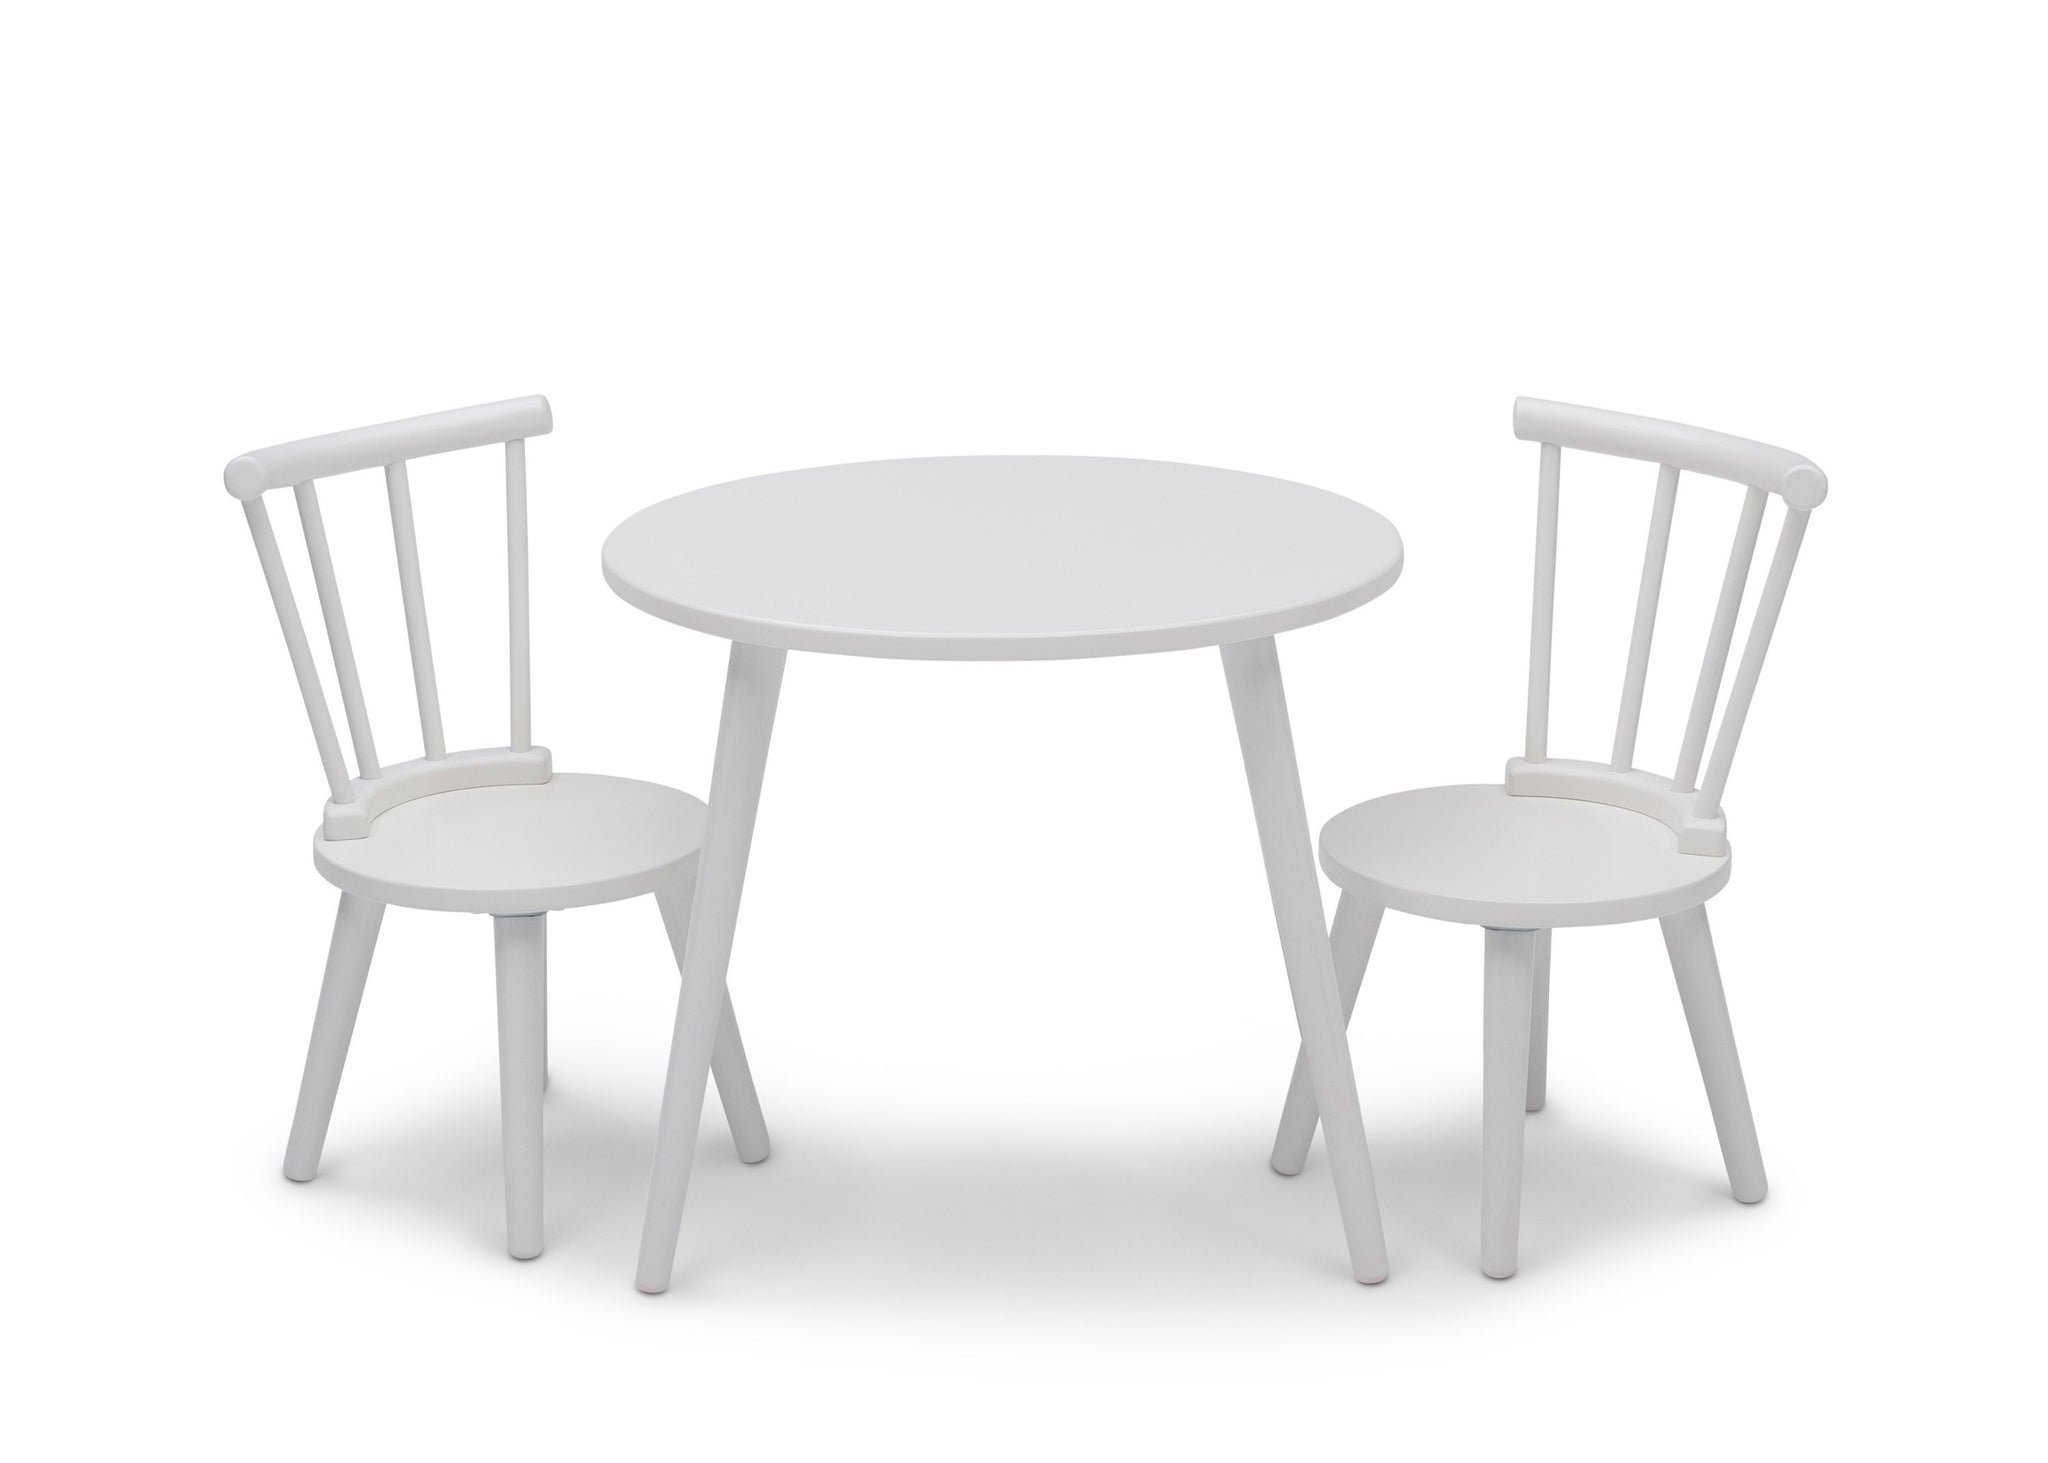 Delta Children Bianca White (130) Homestead Table and Chair Set, Front Silo View